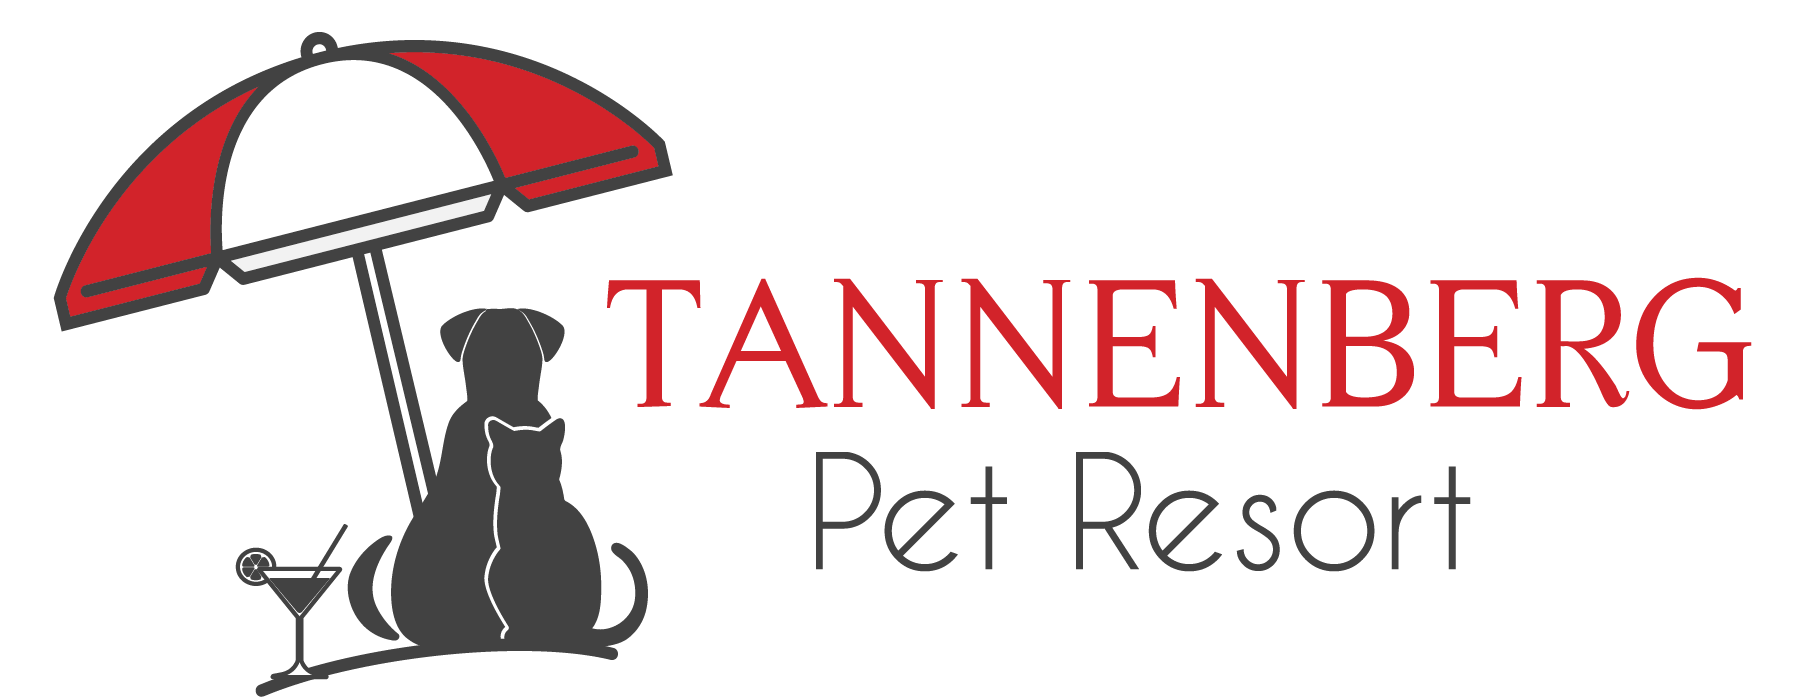 Tannenberg Pet Resort